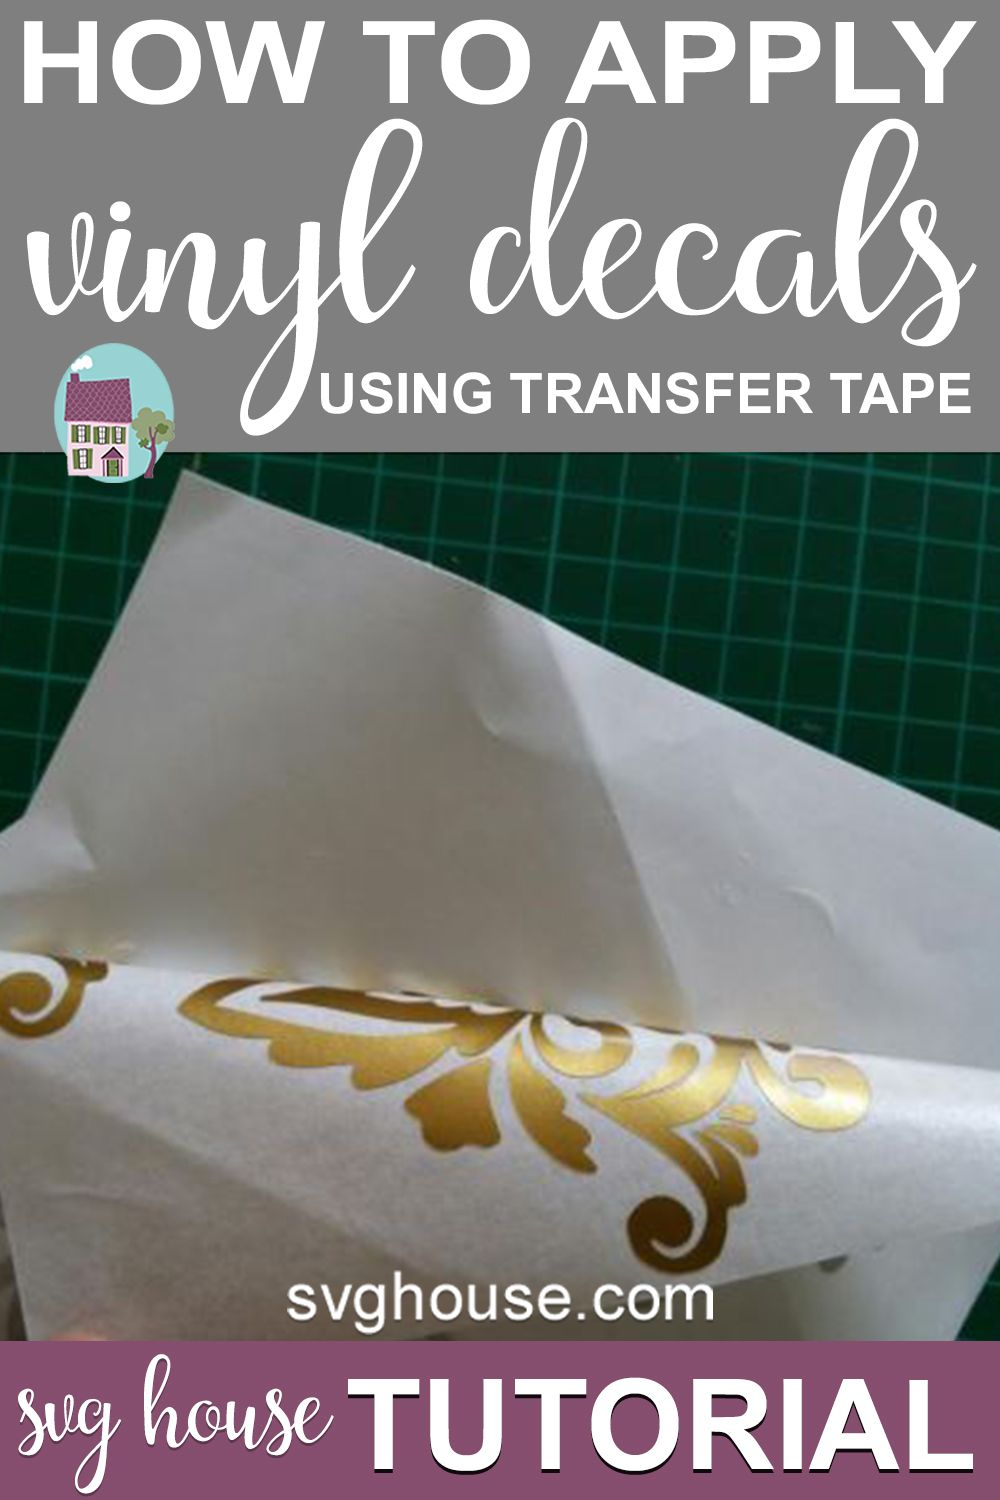 How To Apply Vinyl Decals With Paper Transfer Tape Vinyl Decals Transfer Tape How To Apply